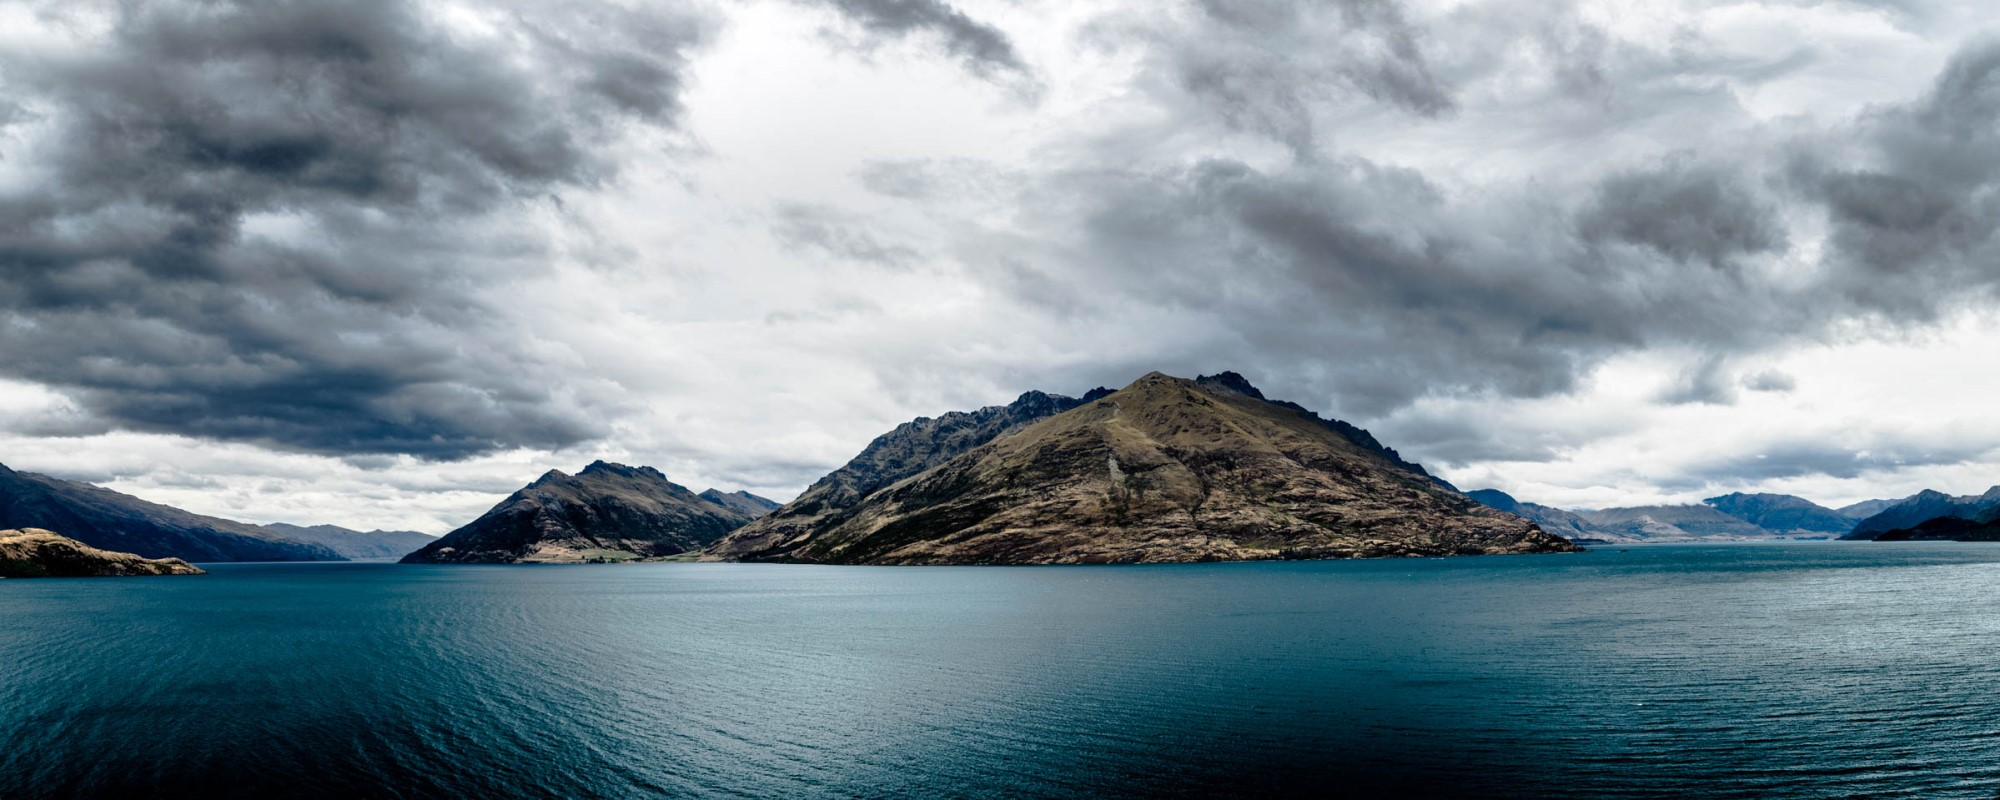 Lake Wakatipu and mountains